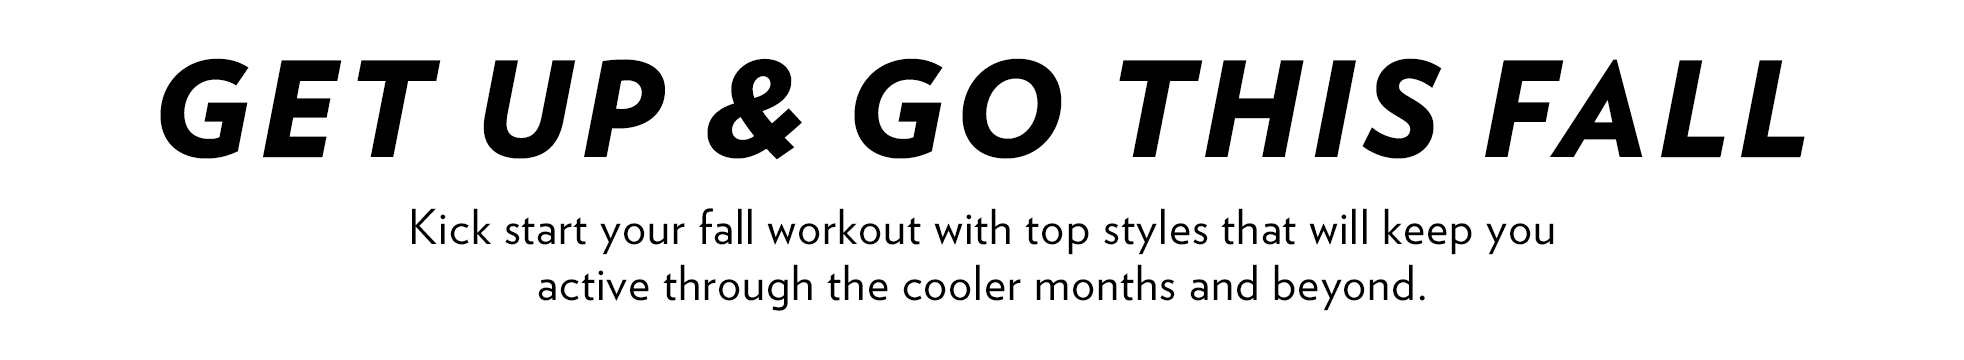 Get Up & Go This Fall